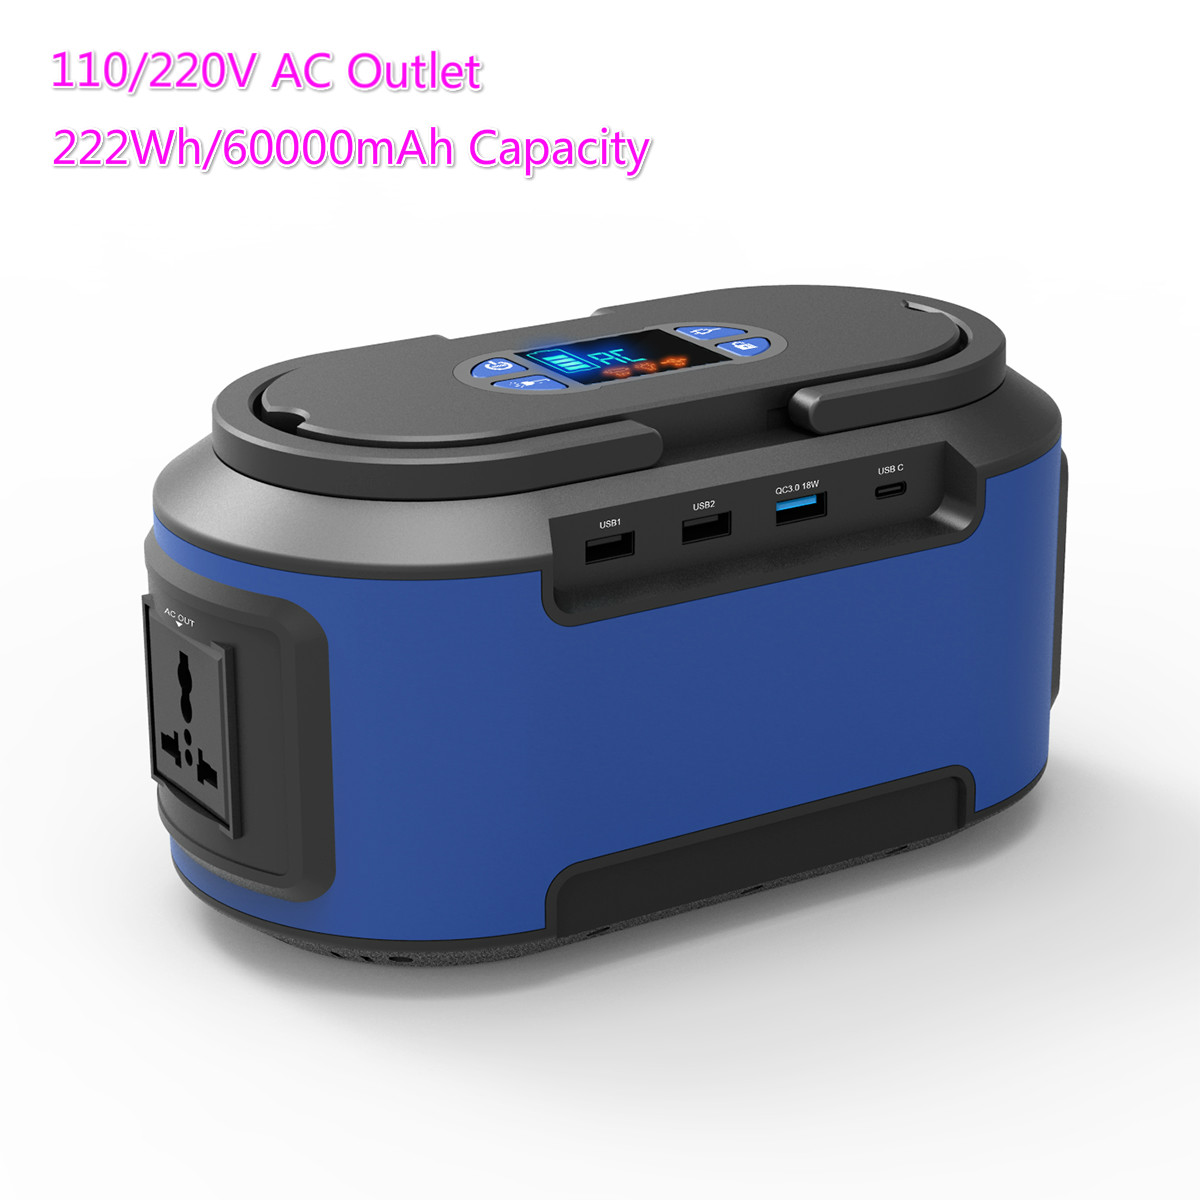 Portable Power Station,60000mAh/222Wh Power Bank 110V/220V External Backup Battery For CPAP Outdoors Camping Travel Fishing Hunt